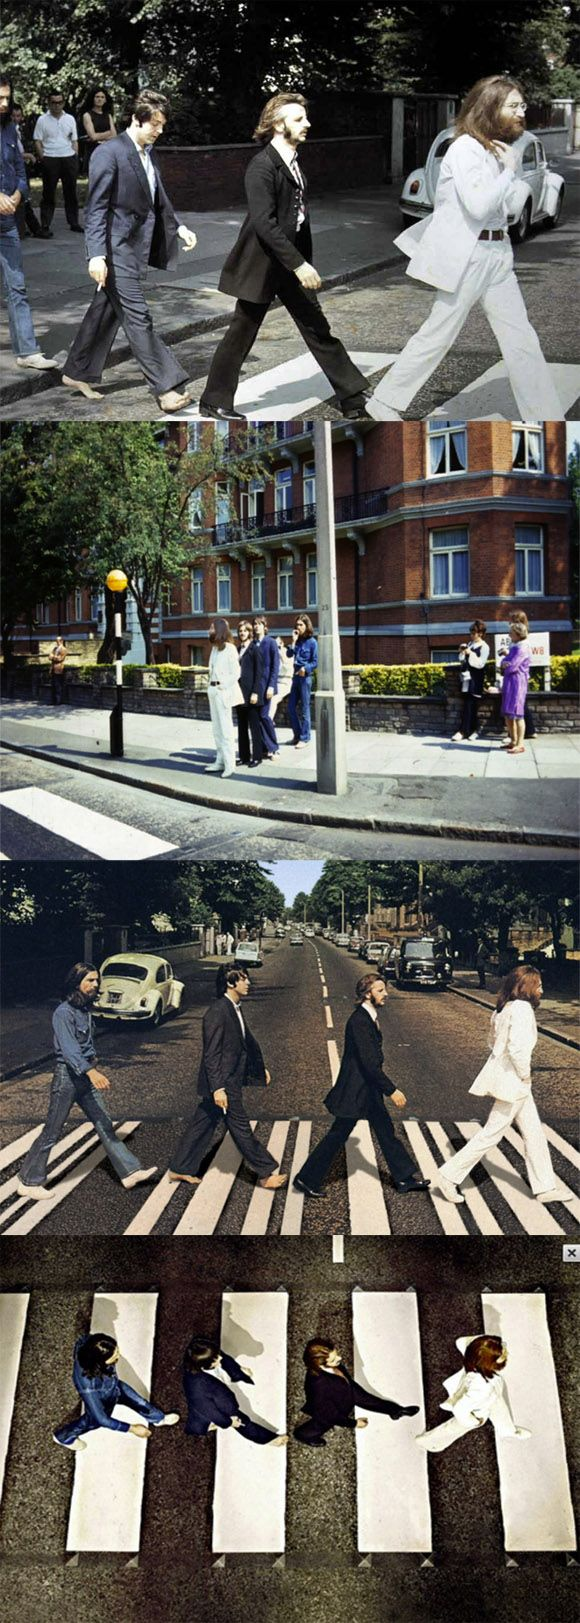 Beatles. All day every day.